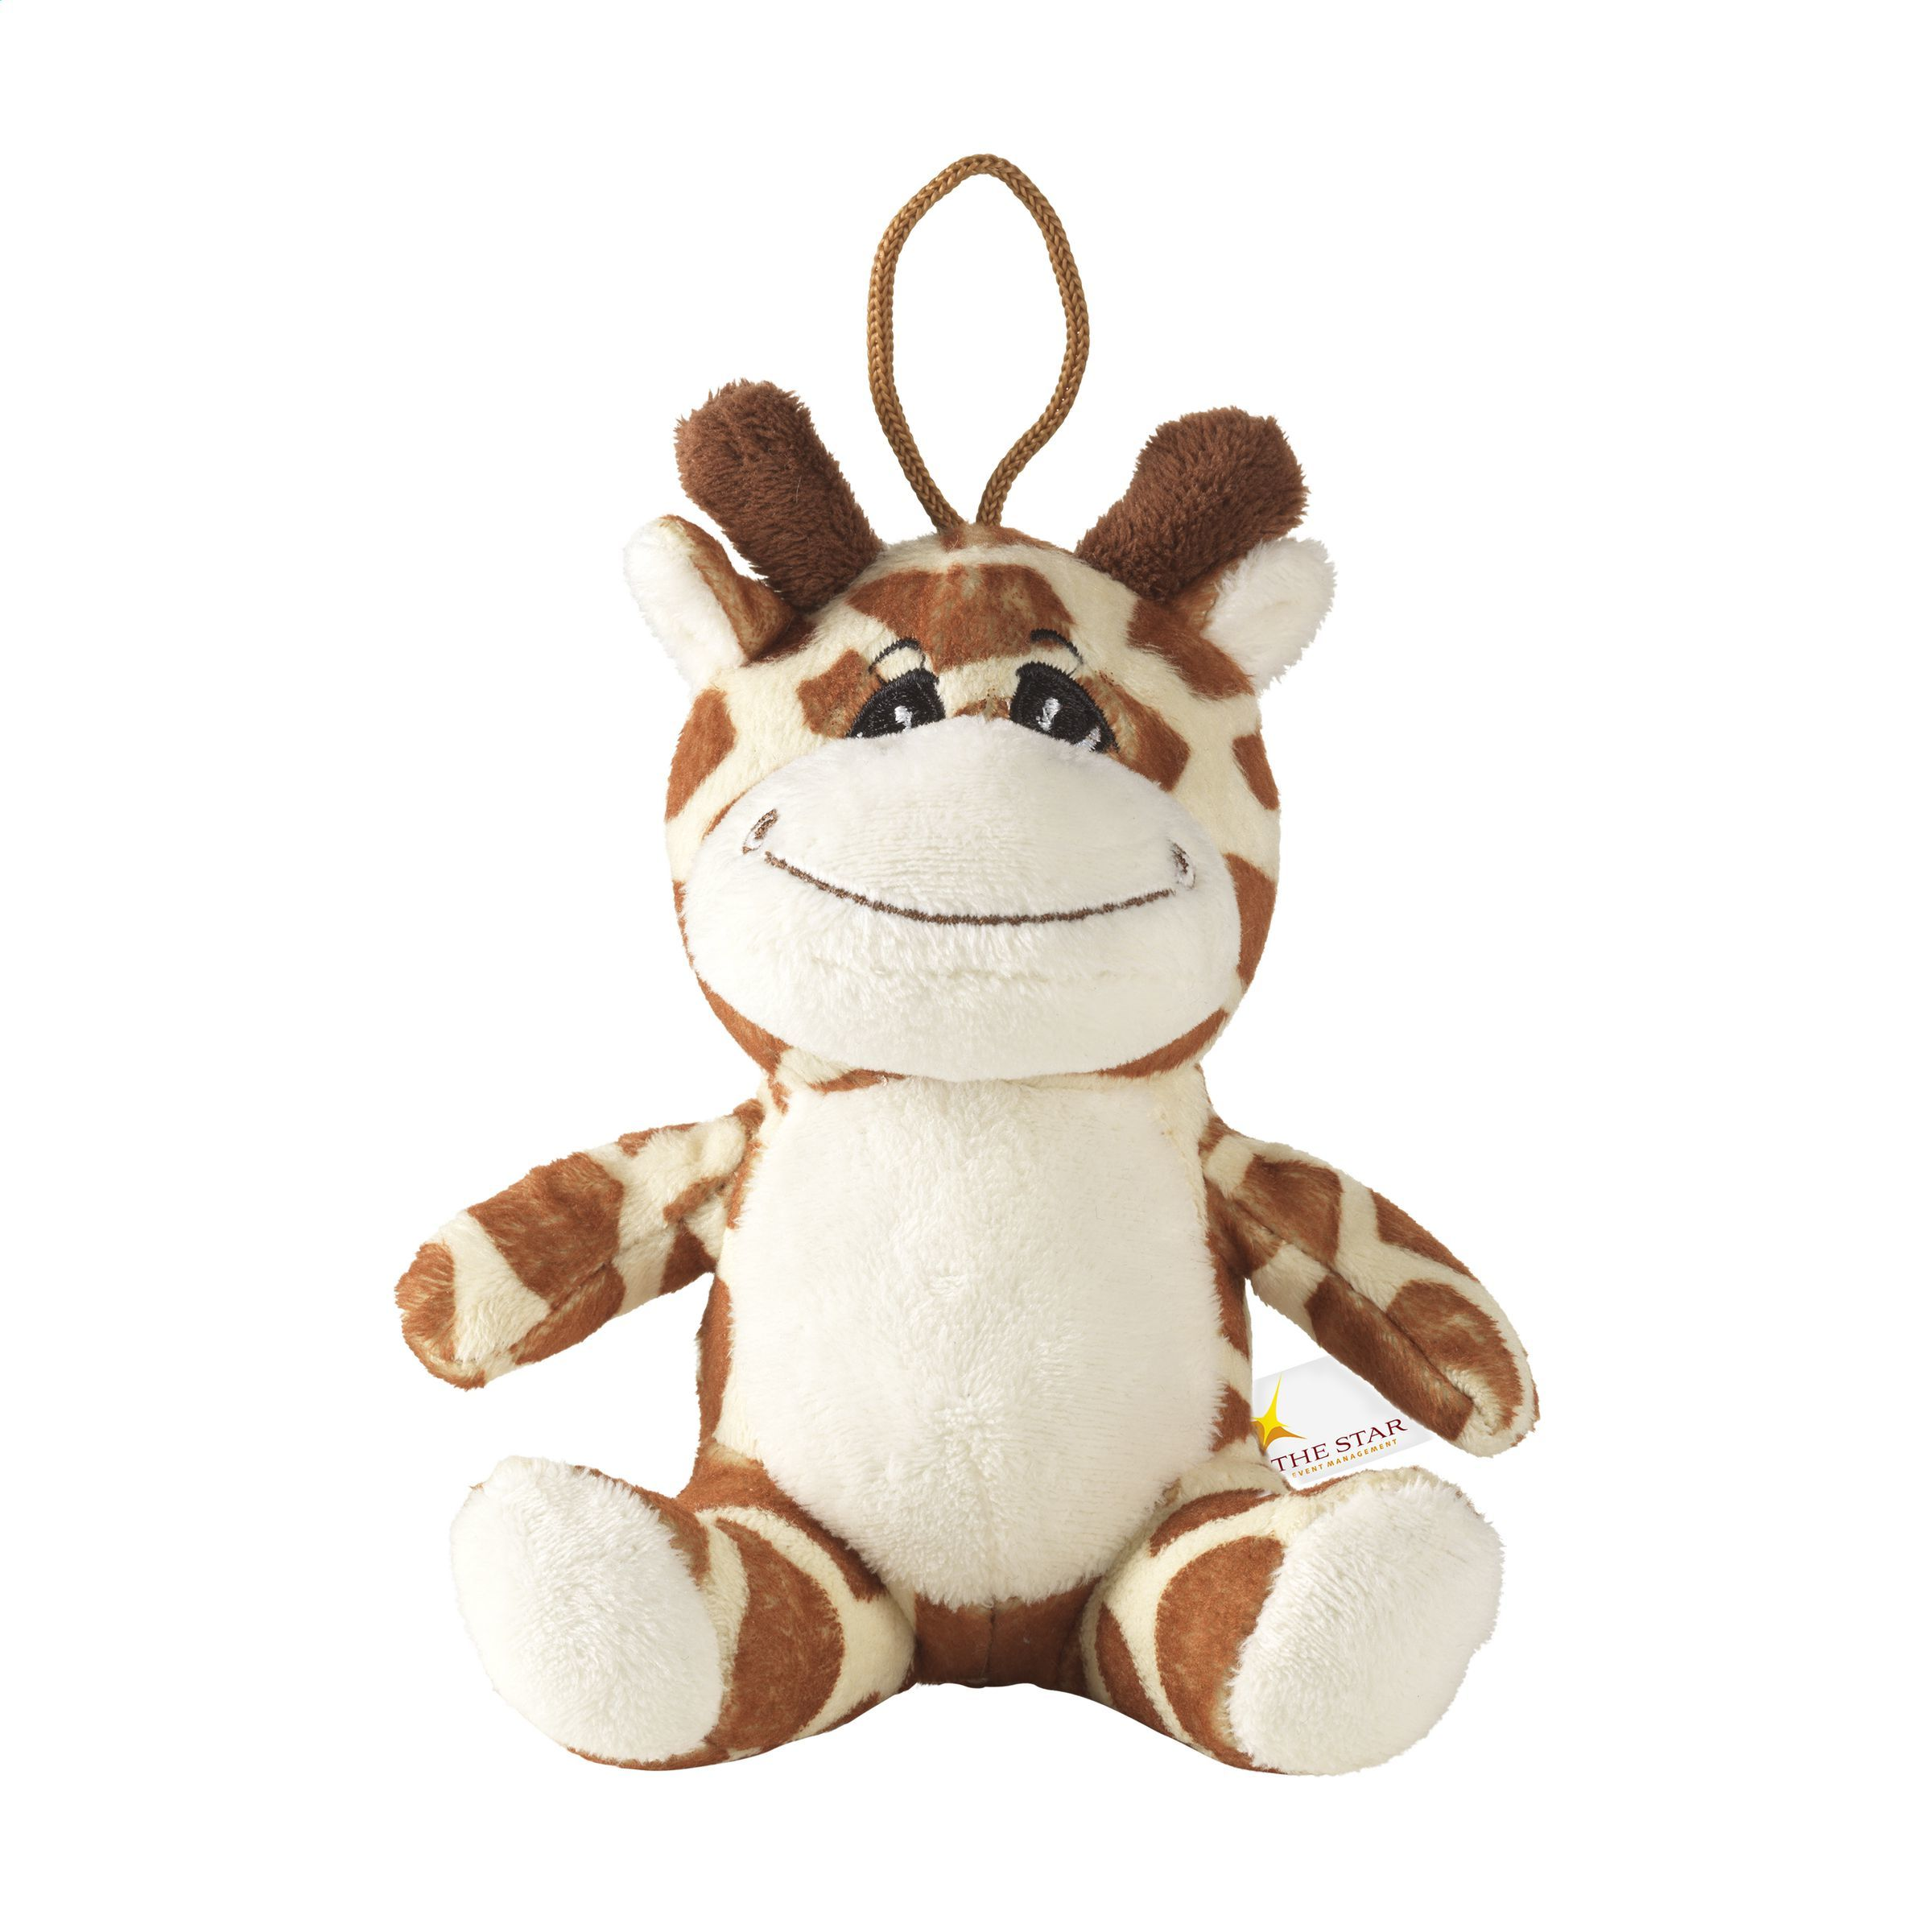 Animal Friend Giraffe knuffel